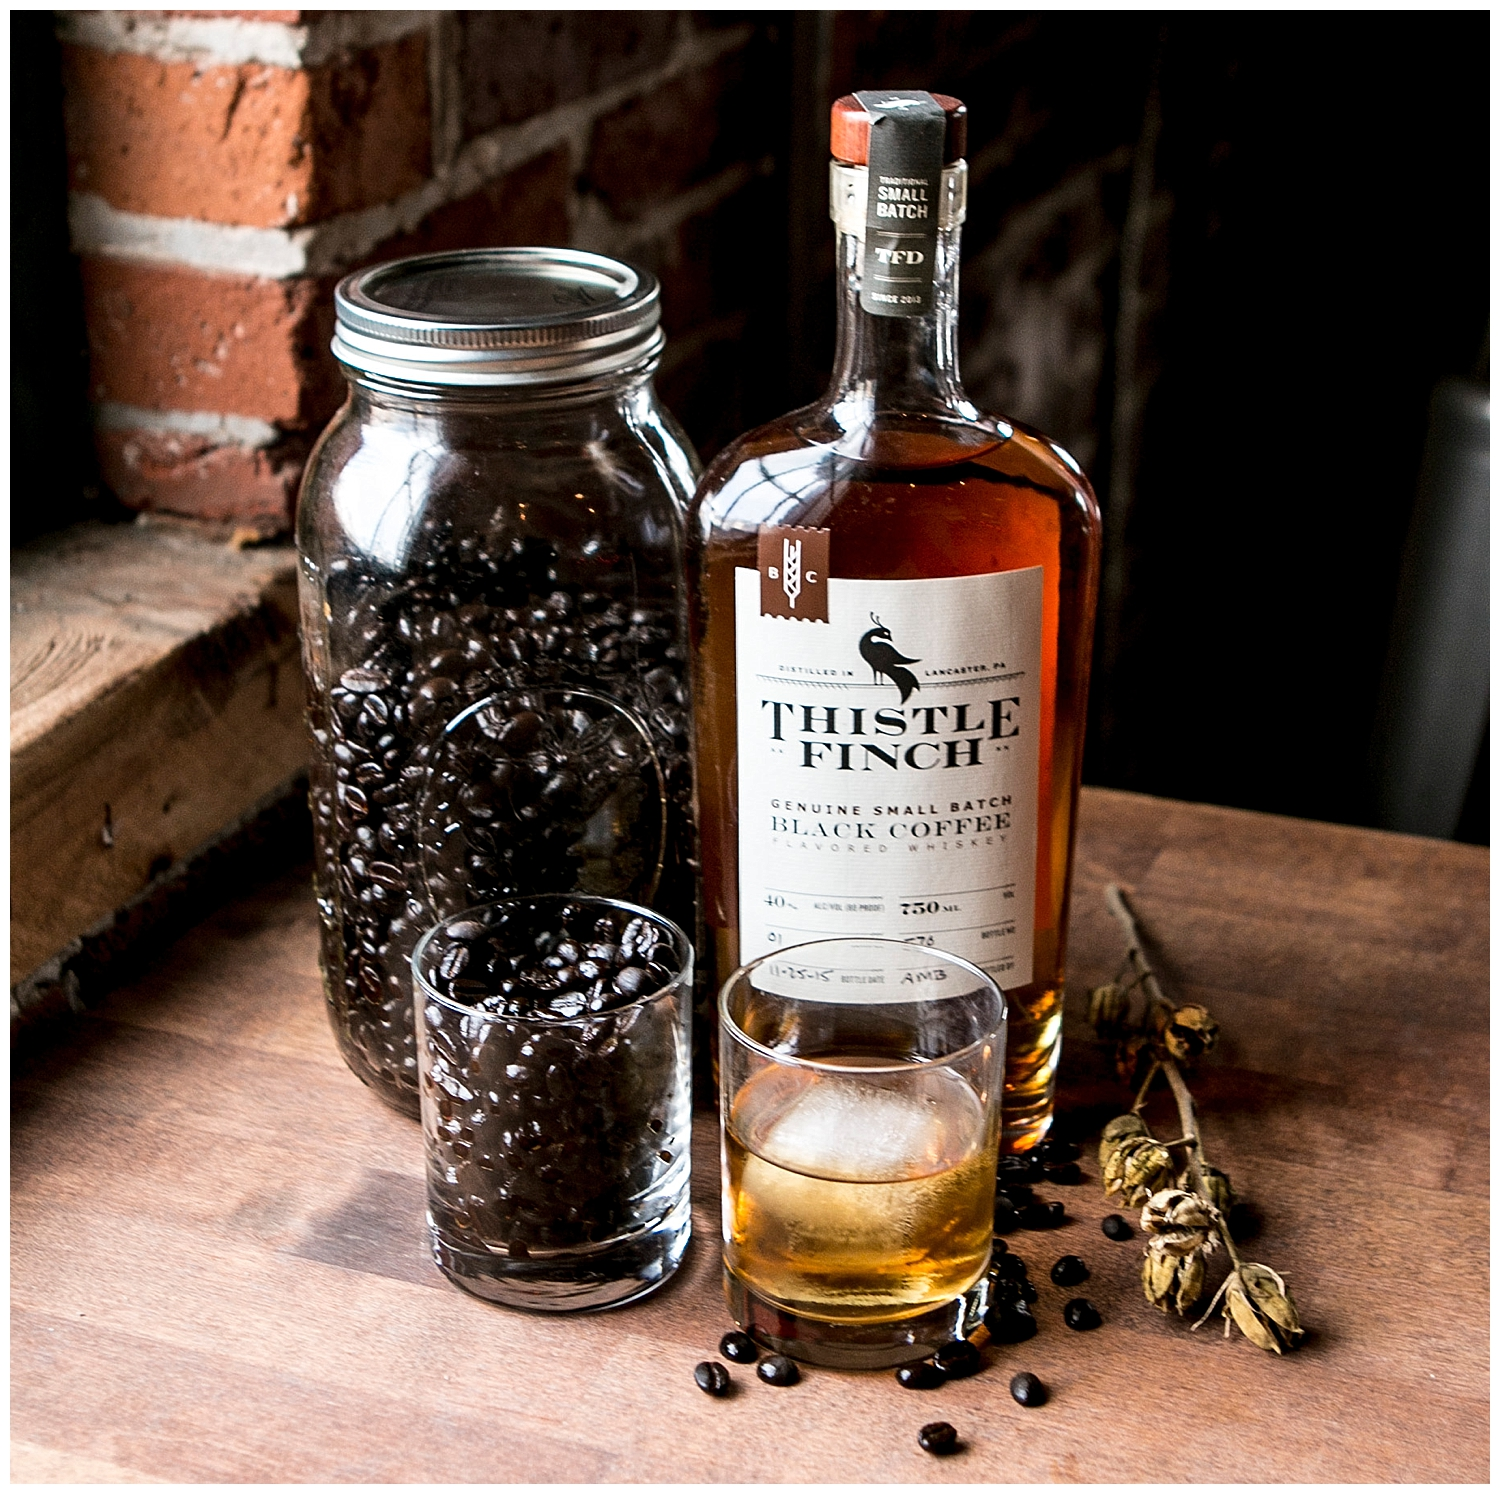 New York, New Jersey and Pennsylvania wedding vendors, resources and inspiration for the modern couple | Father's Day Gift Guide - Thistle Finch Distillery